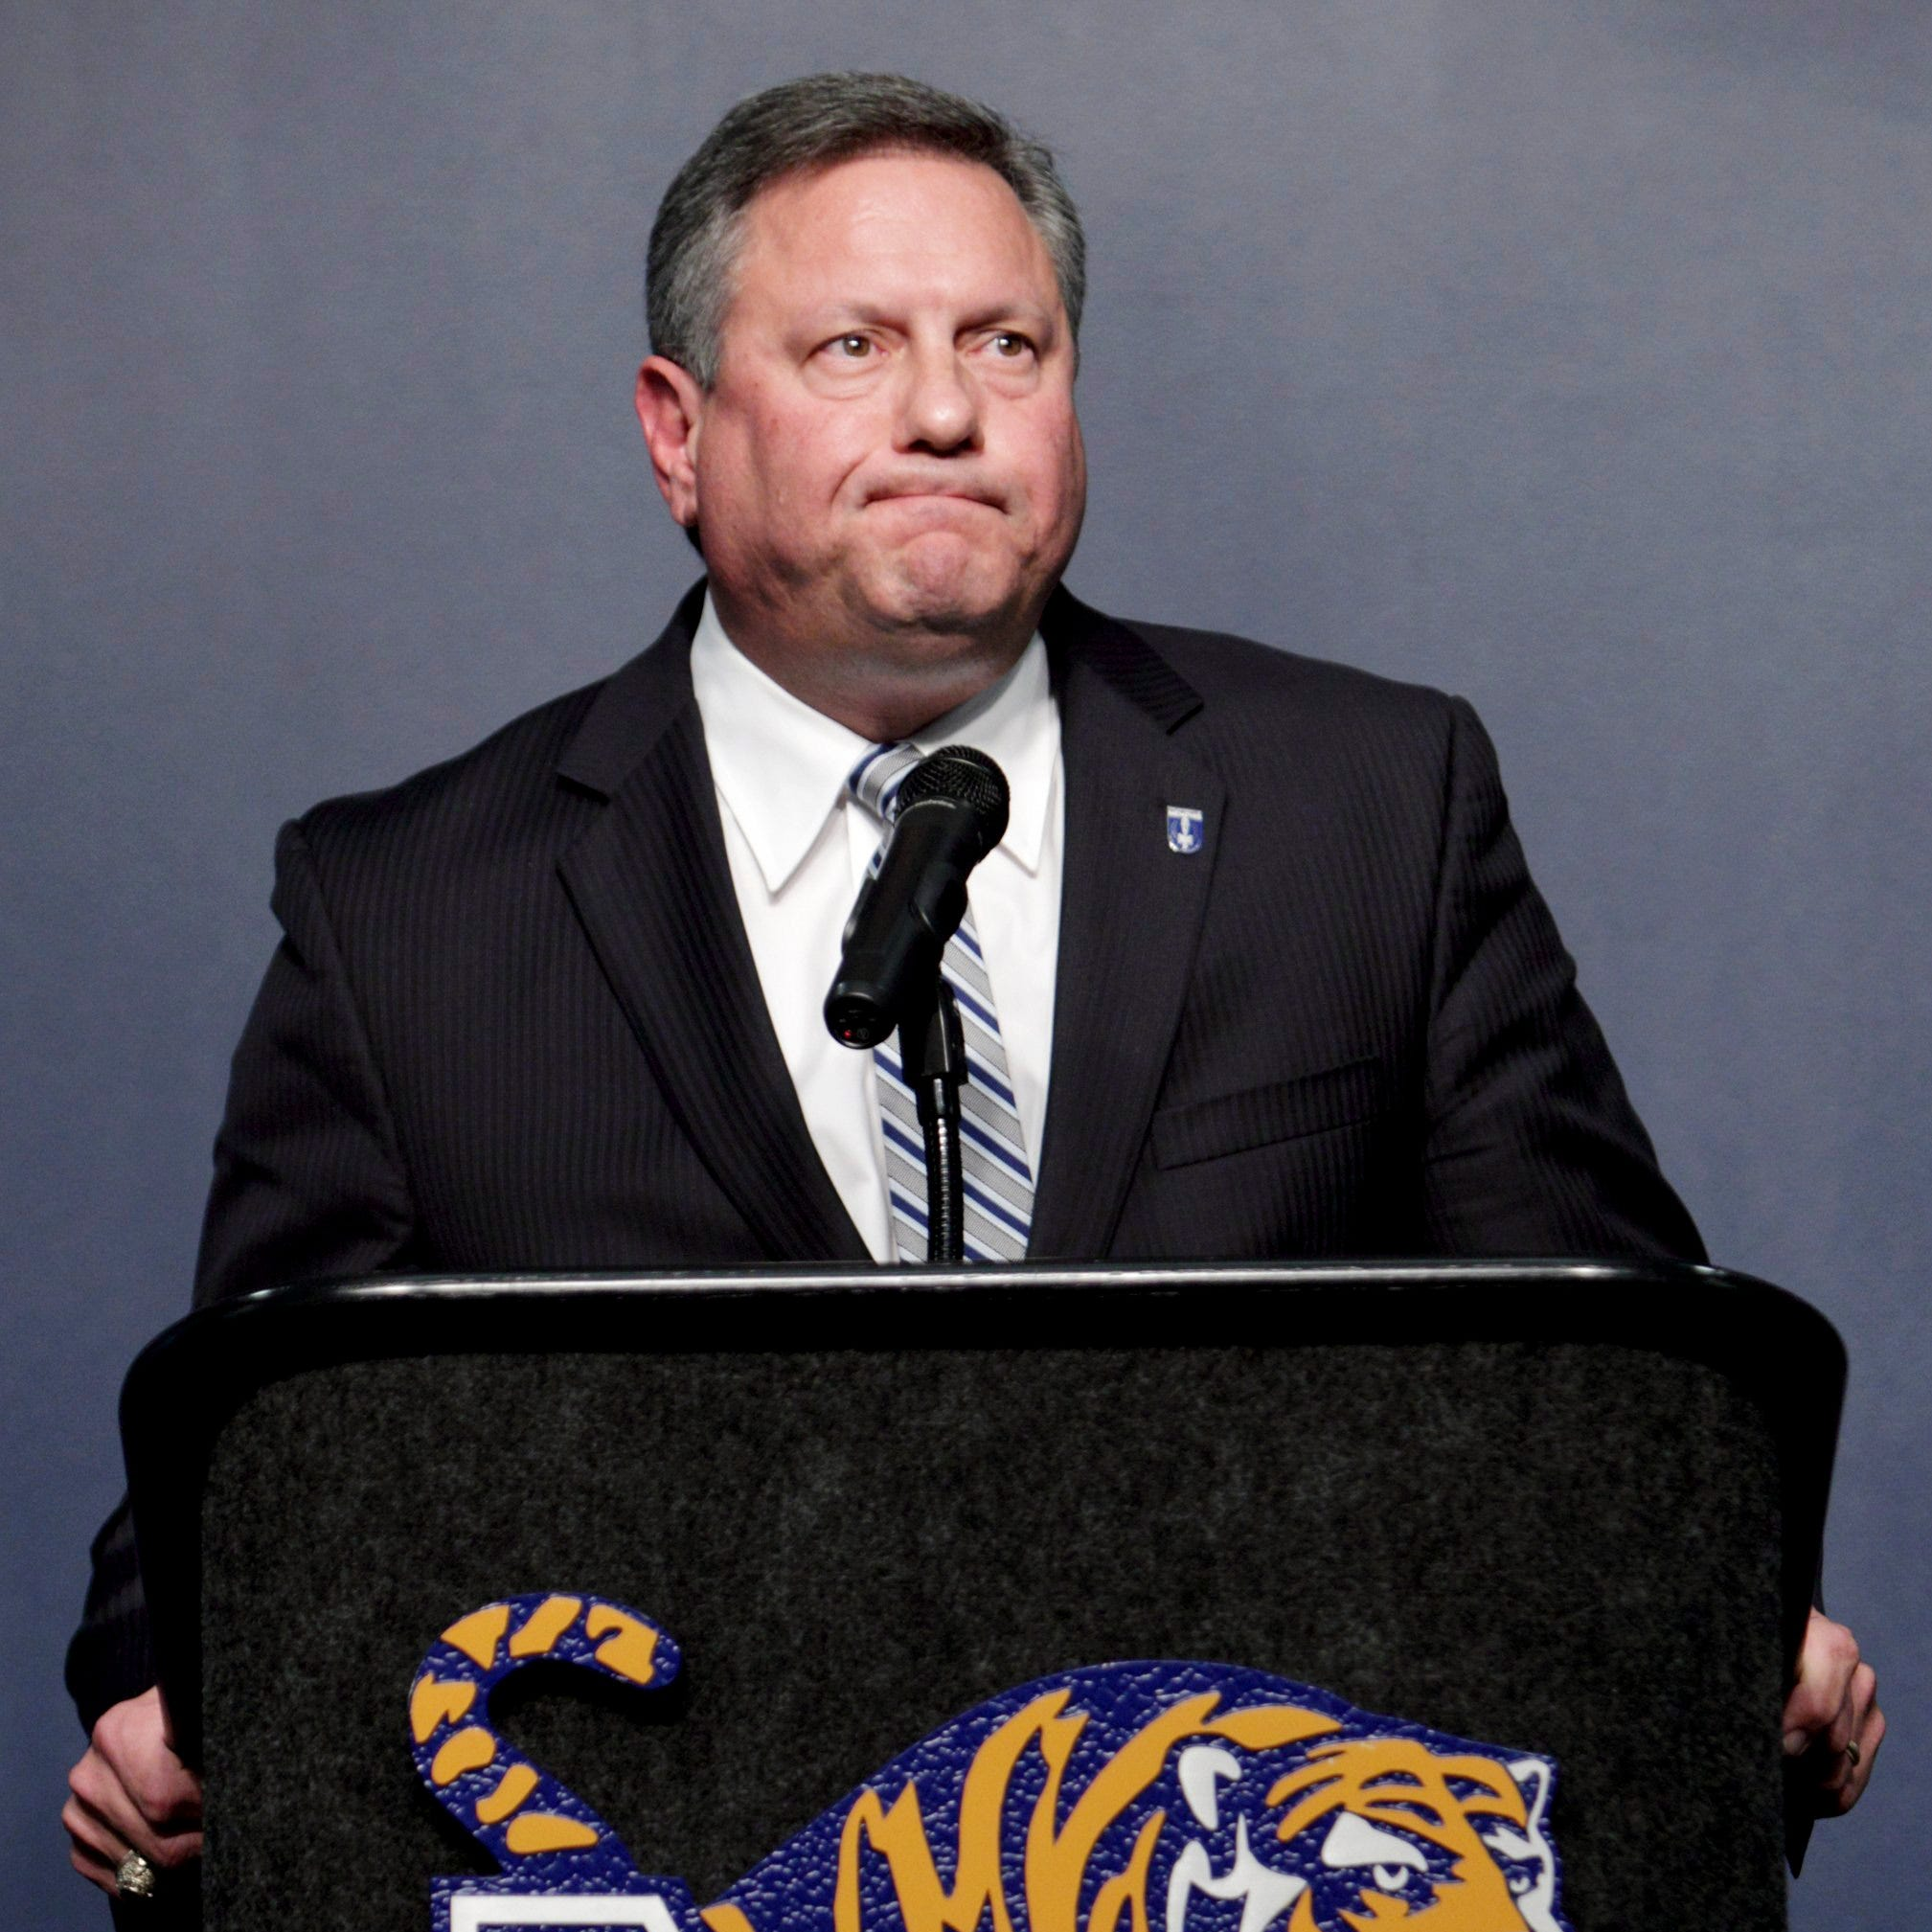 University of Memphis releases unredacted letter alleging unprofessional behavior by former AD Tom Bowen